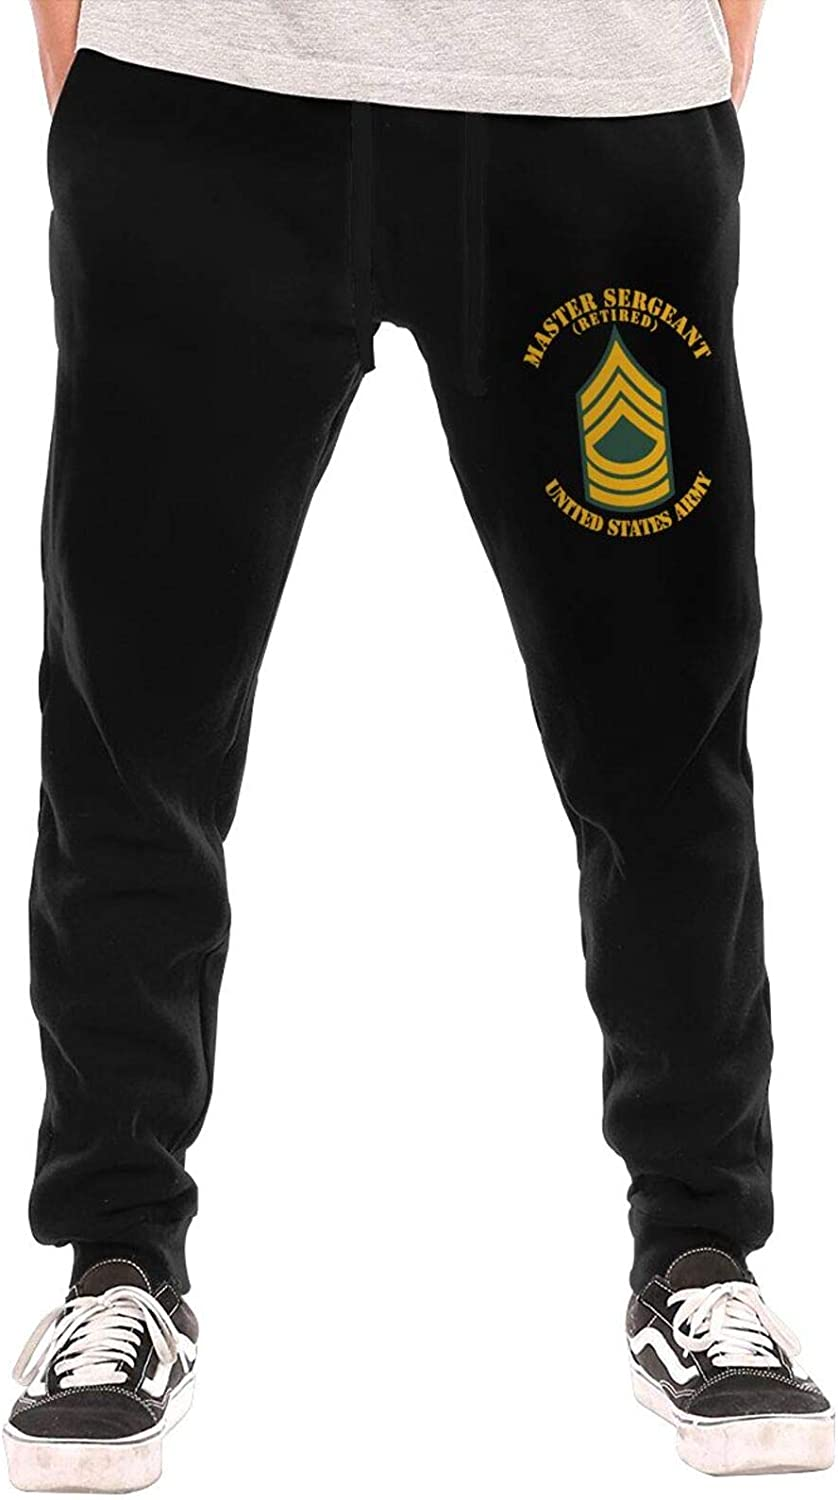 National products Msg Master Sergeant Blue Retired Men Trous Pants Long Cotton Many popular brands All